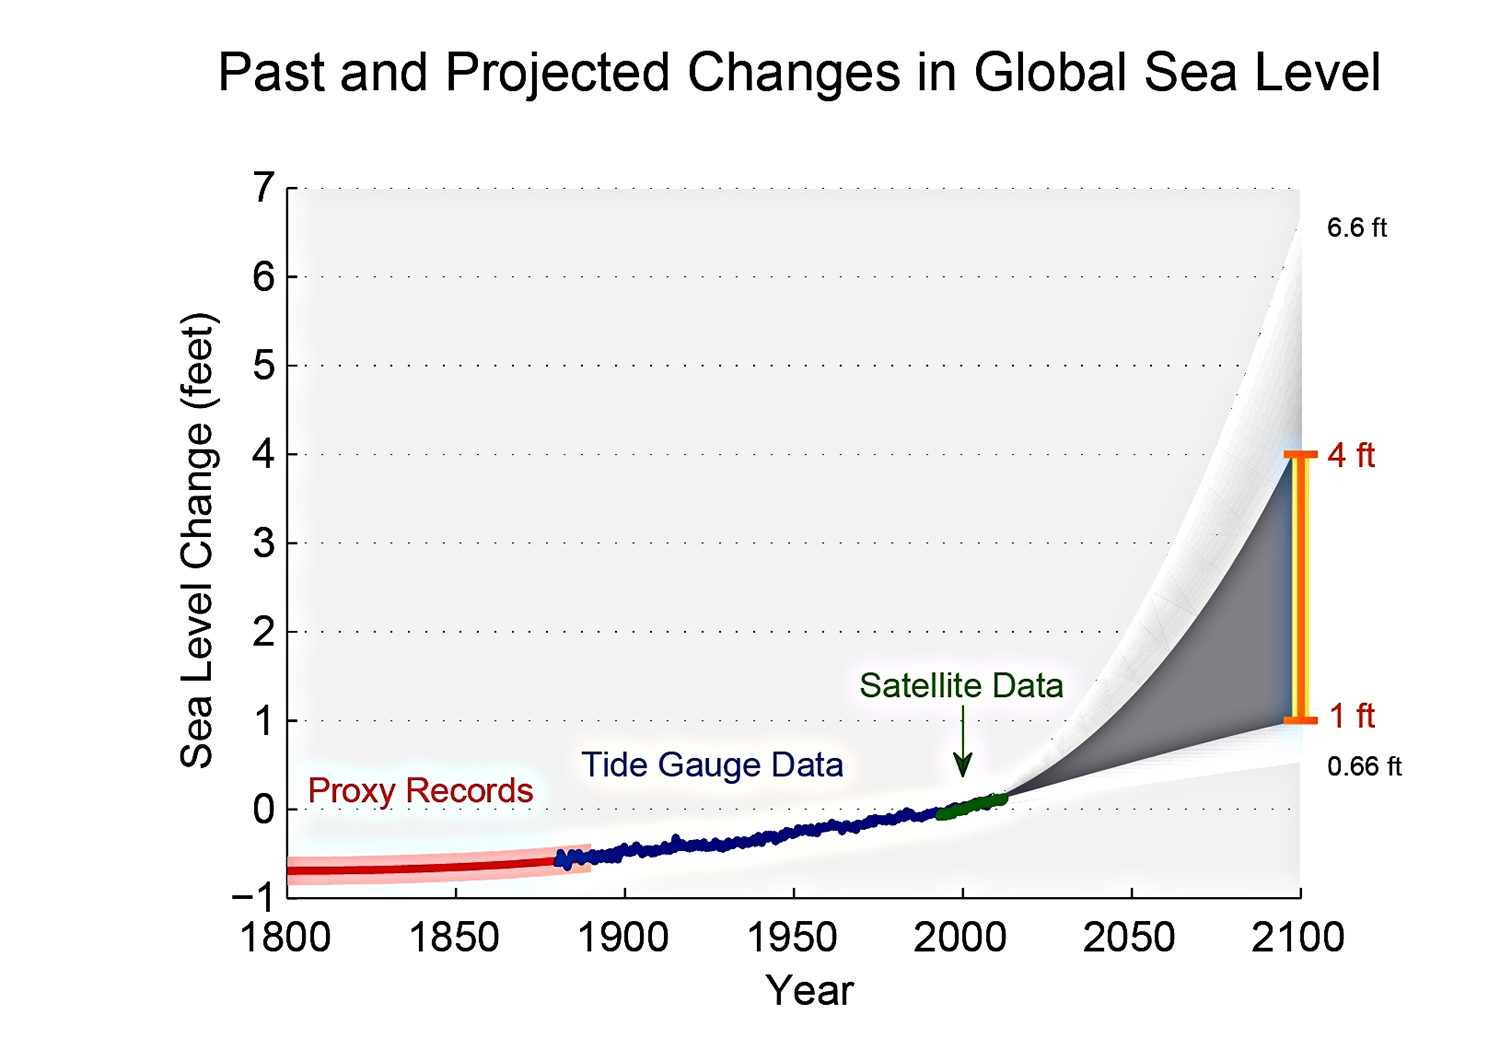 past-and-projected-changes-in-global-sea-level-graph.jpeg